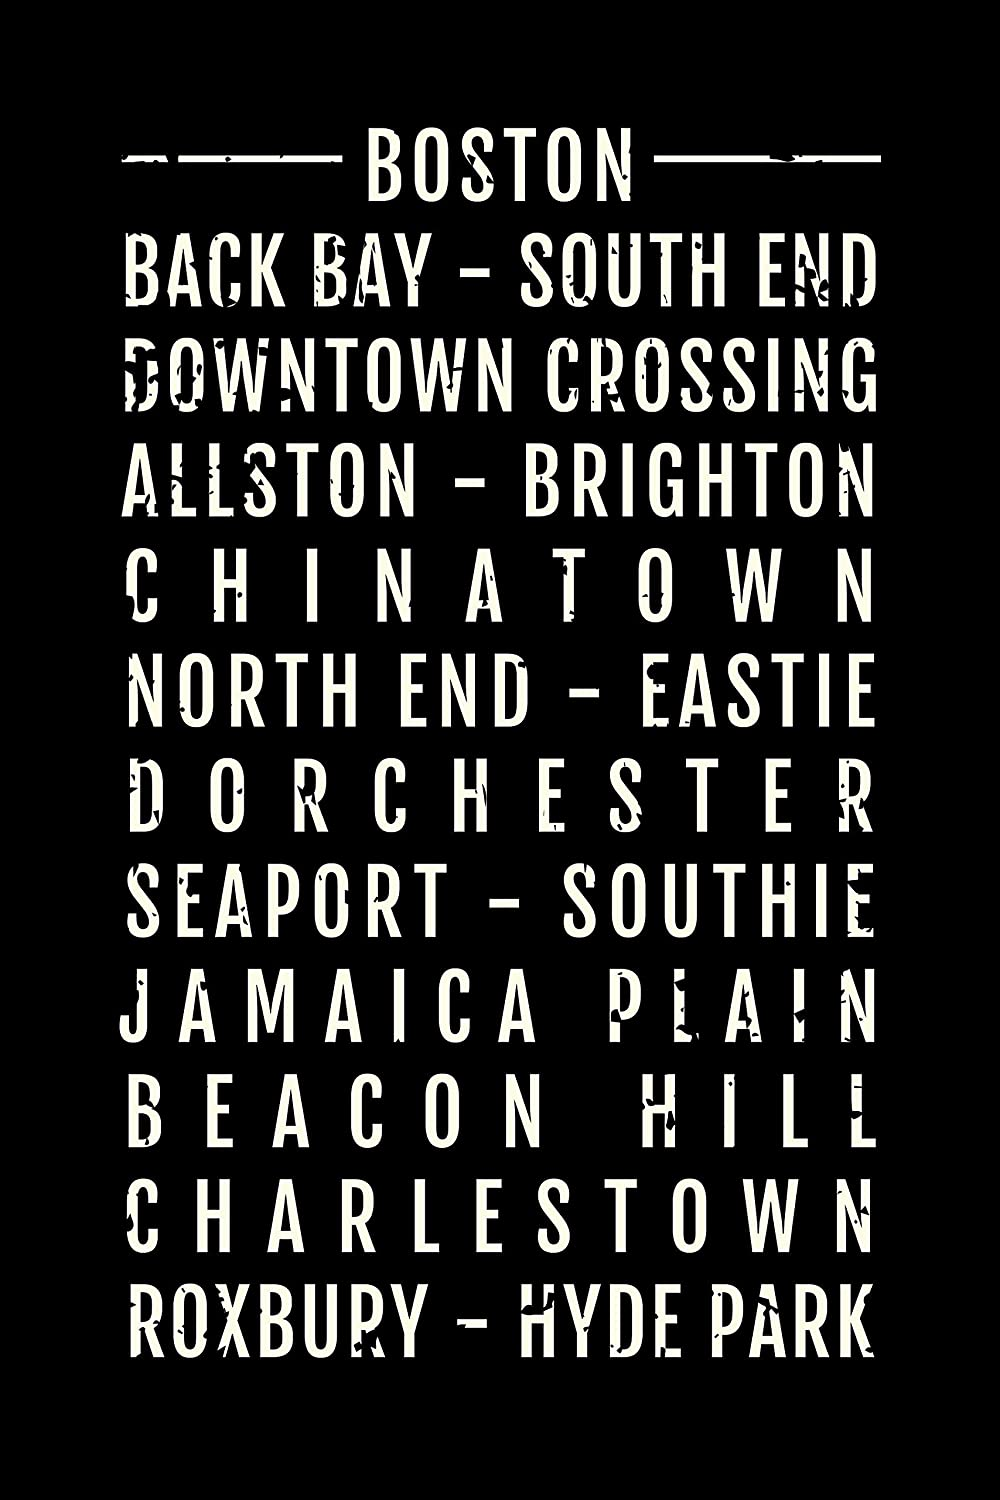 Boston Subway Map Poster.Amazon Com Boston Print Neighborhood City Map Subway Poster